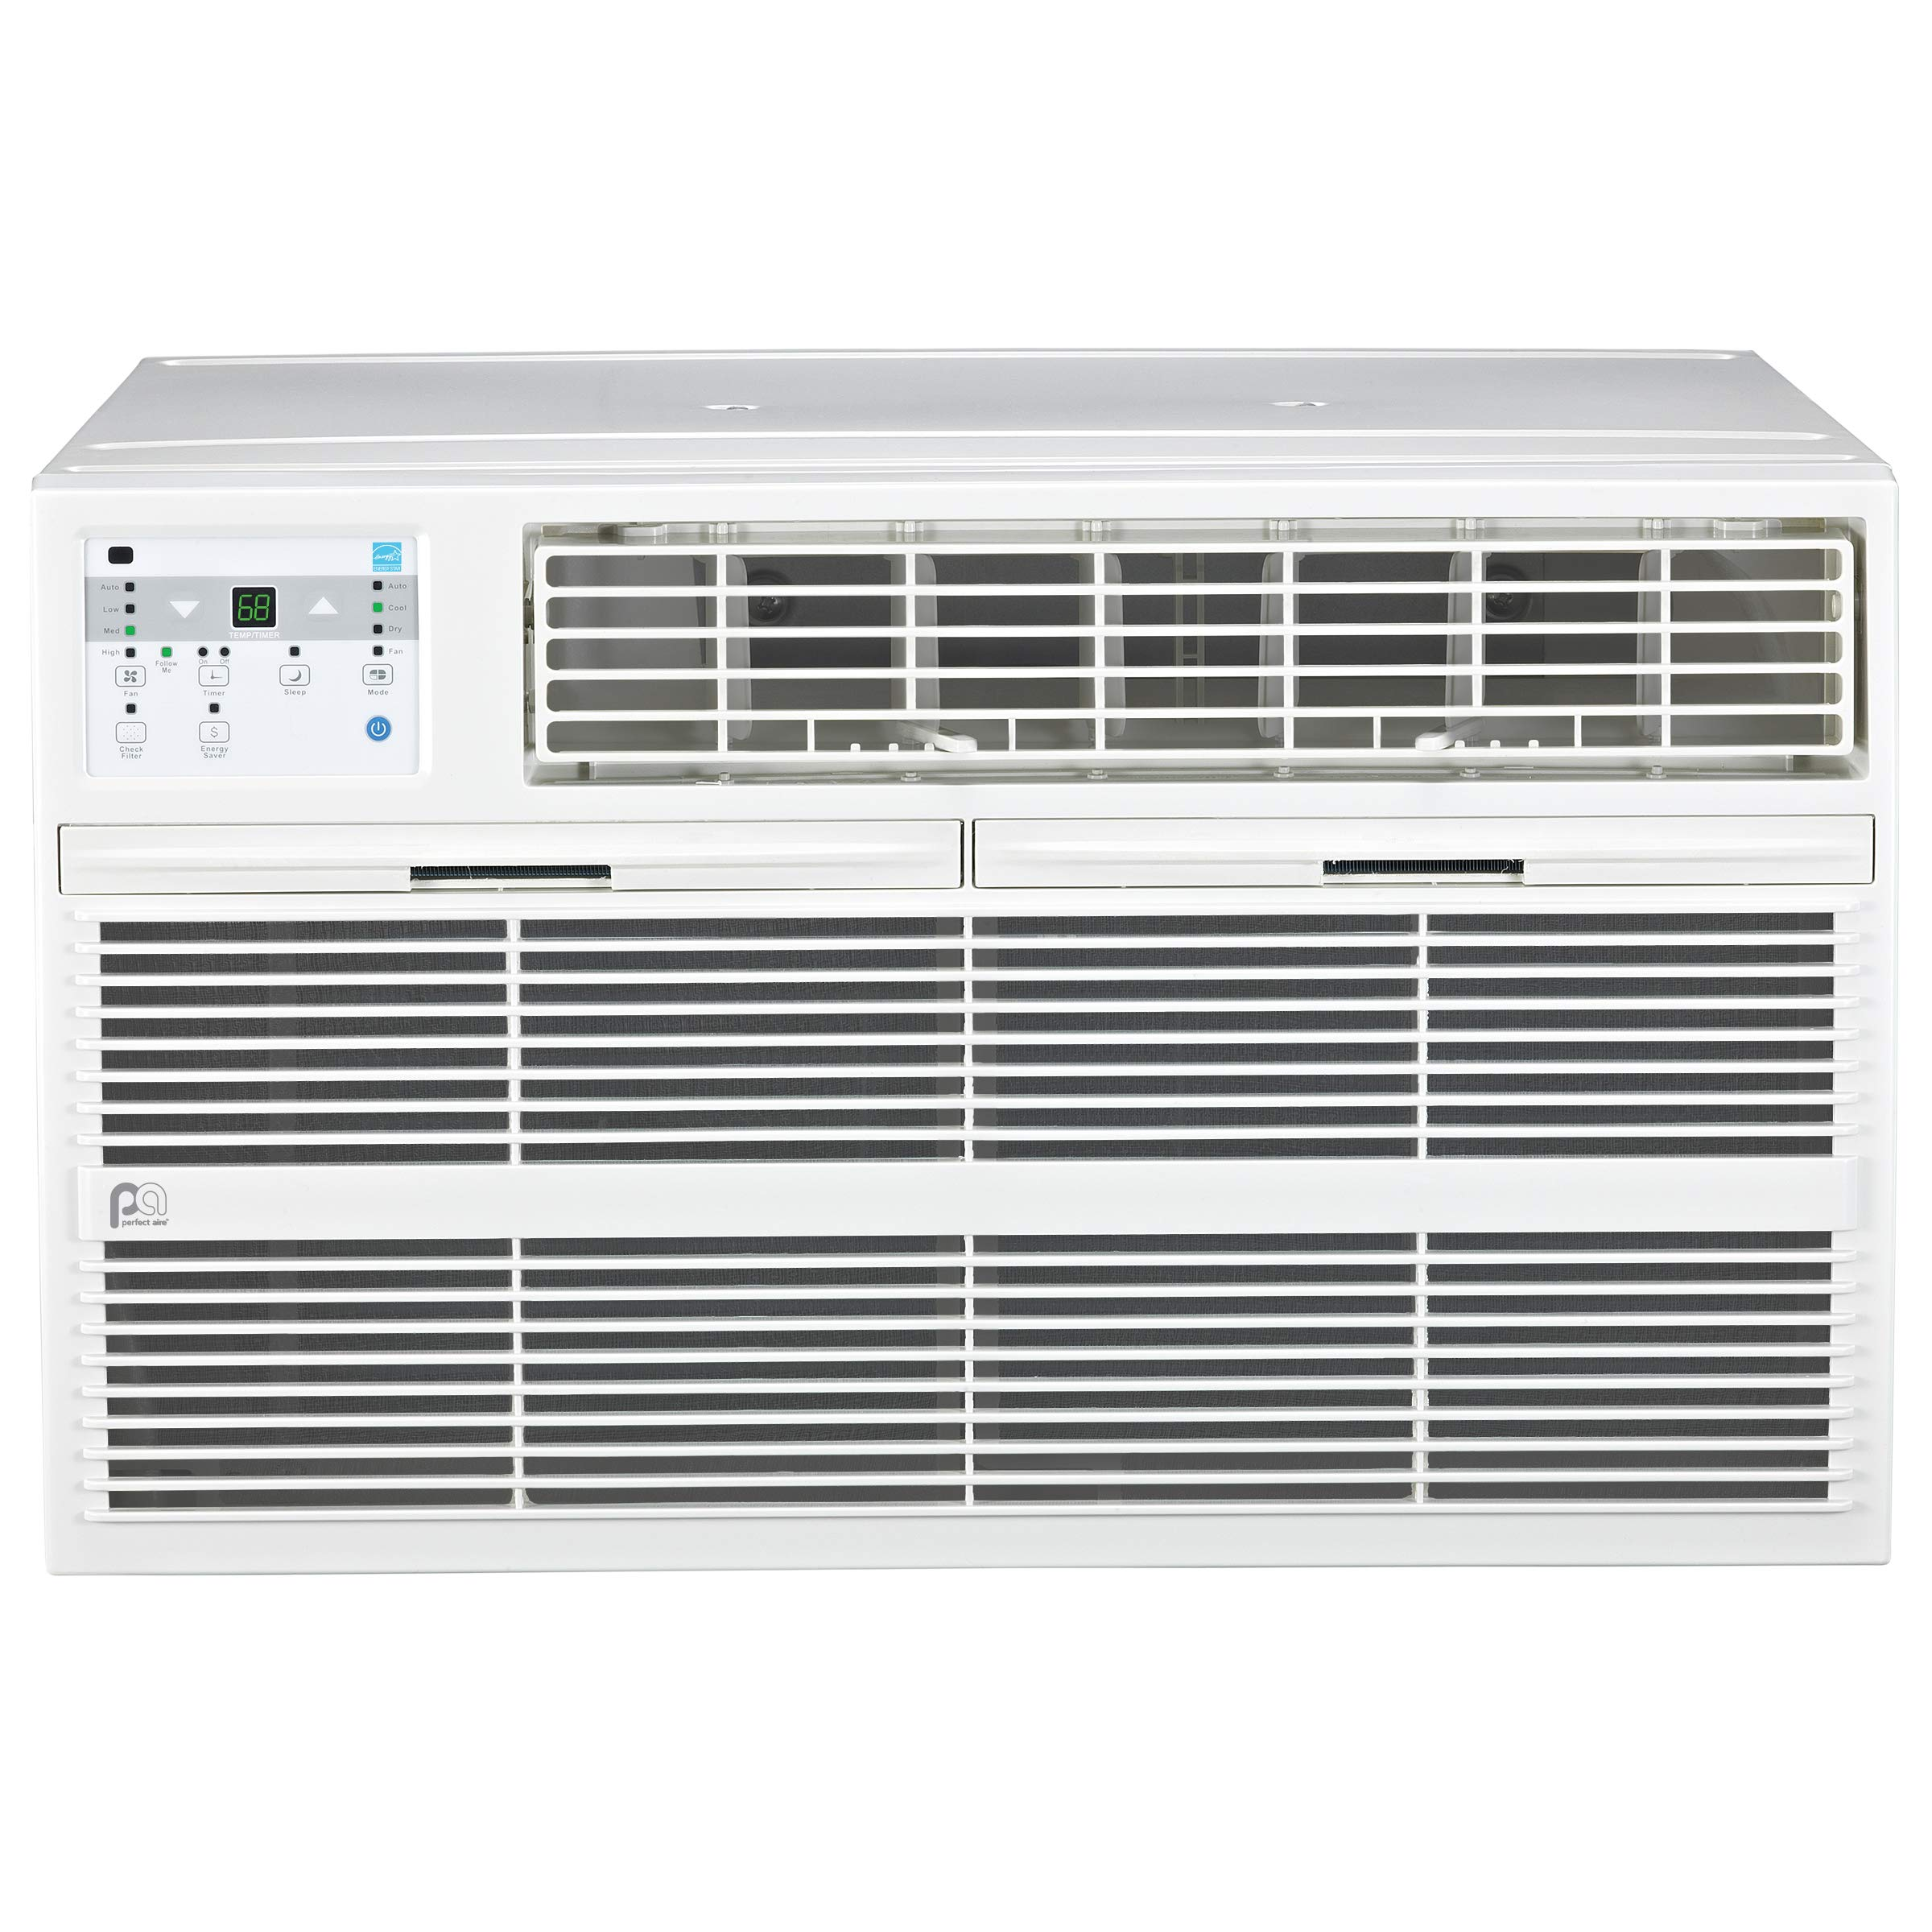 Perfect Aire 4PATW10000 10,000 BTU Thru-the-Wall Air Conditioner with Remote Control, EER 10.6, 400-450 Sq. Ft. Coverage by PerfectAire